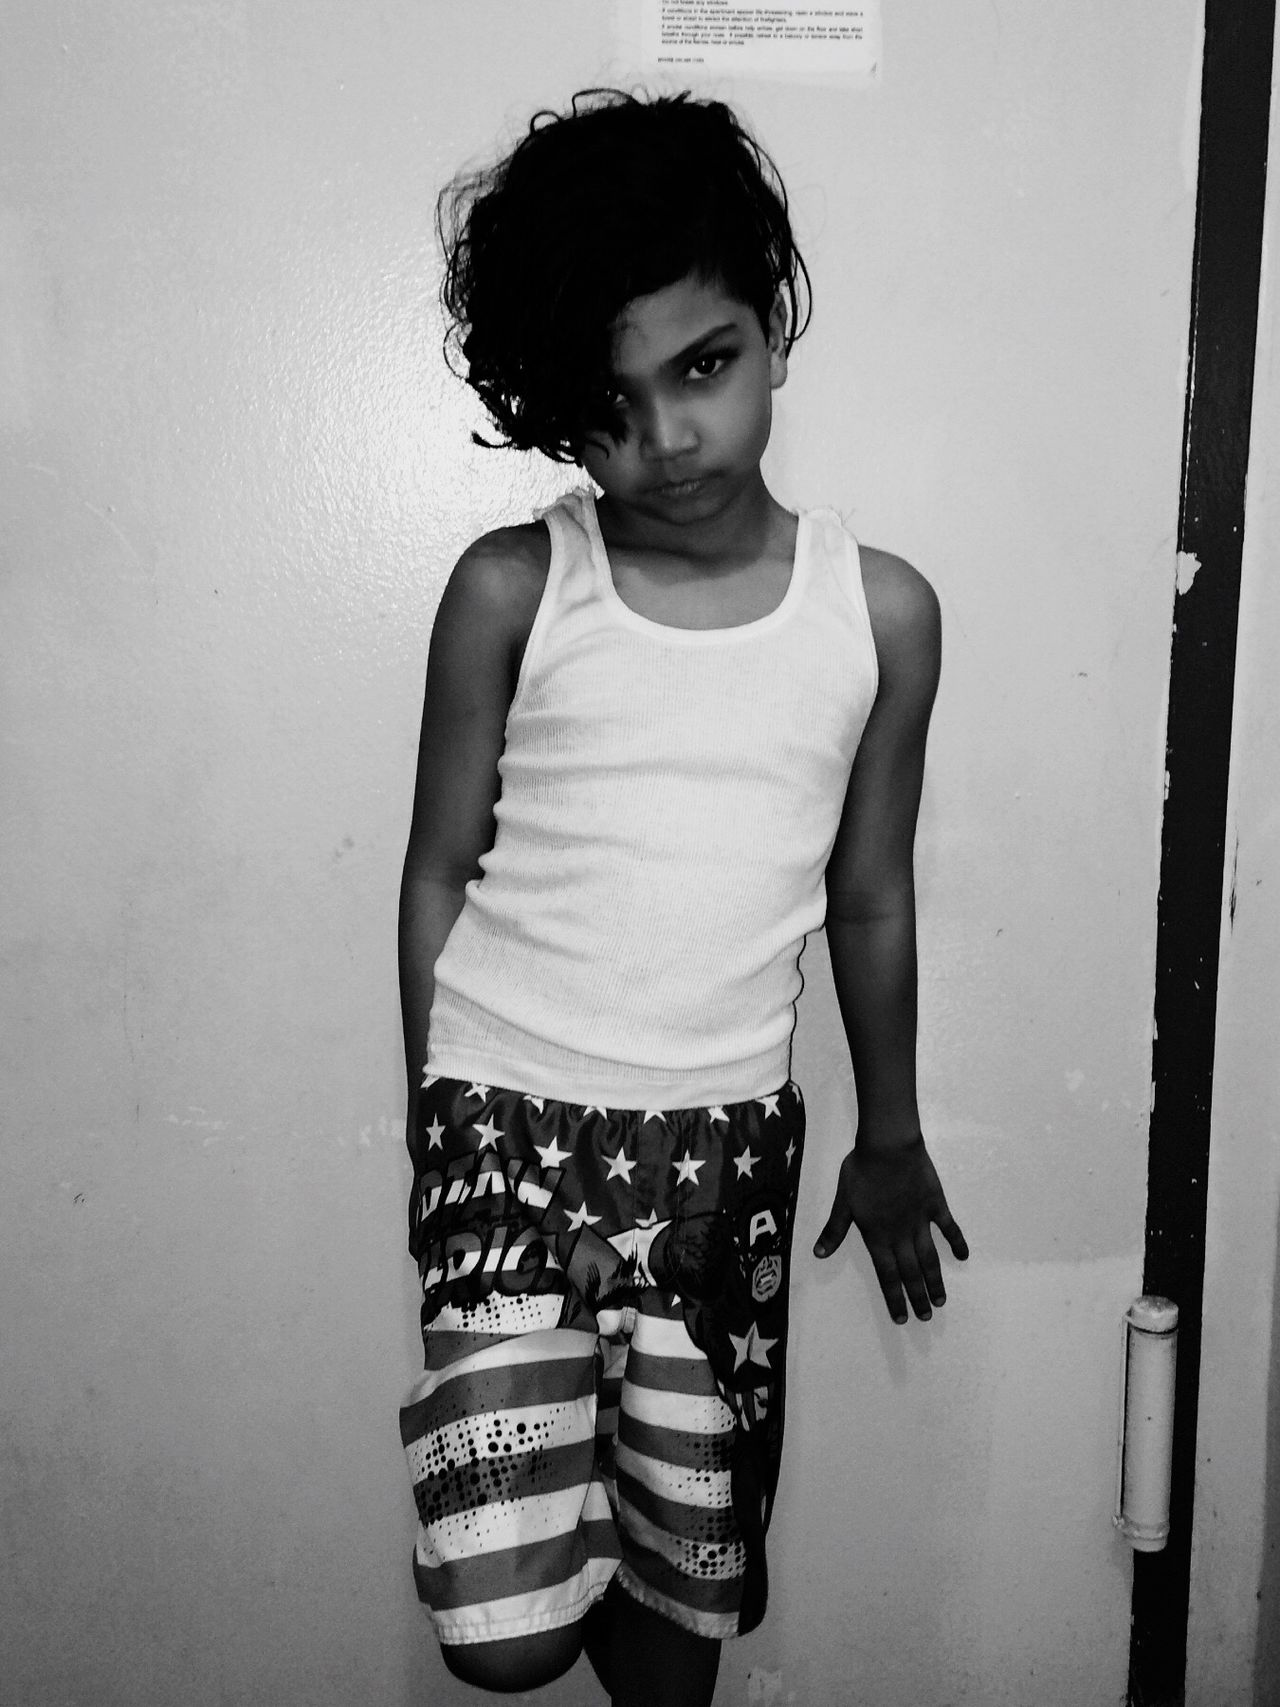 Posing and keeping focused Casual Clothing Innocence Elementary Age Standing Blackandwhite Model Focused Littleboy